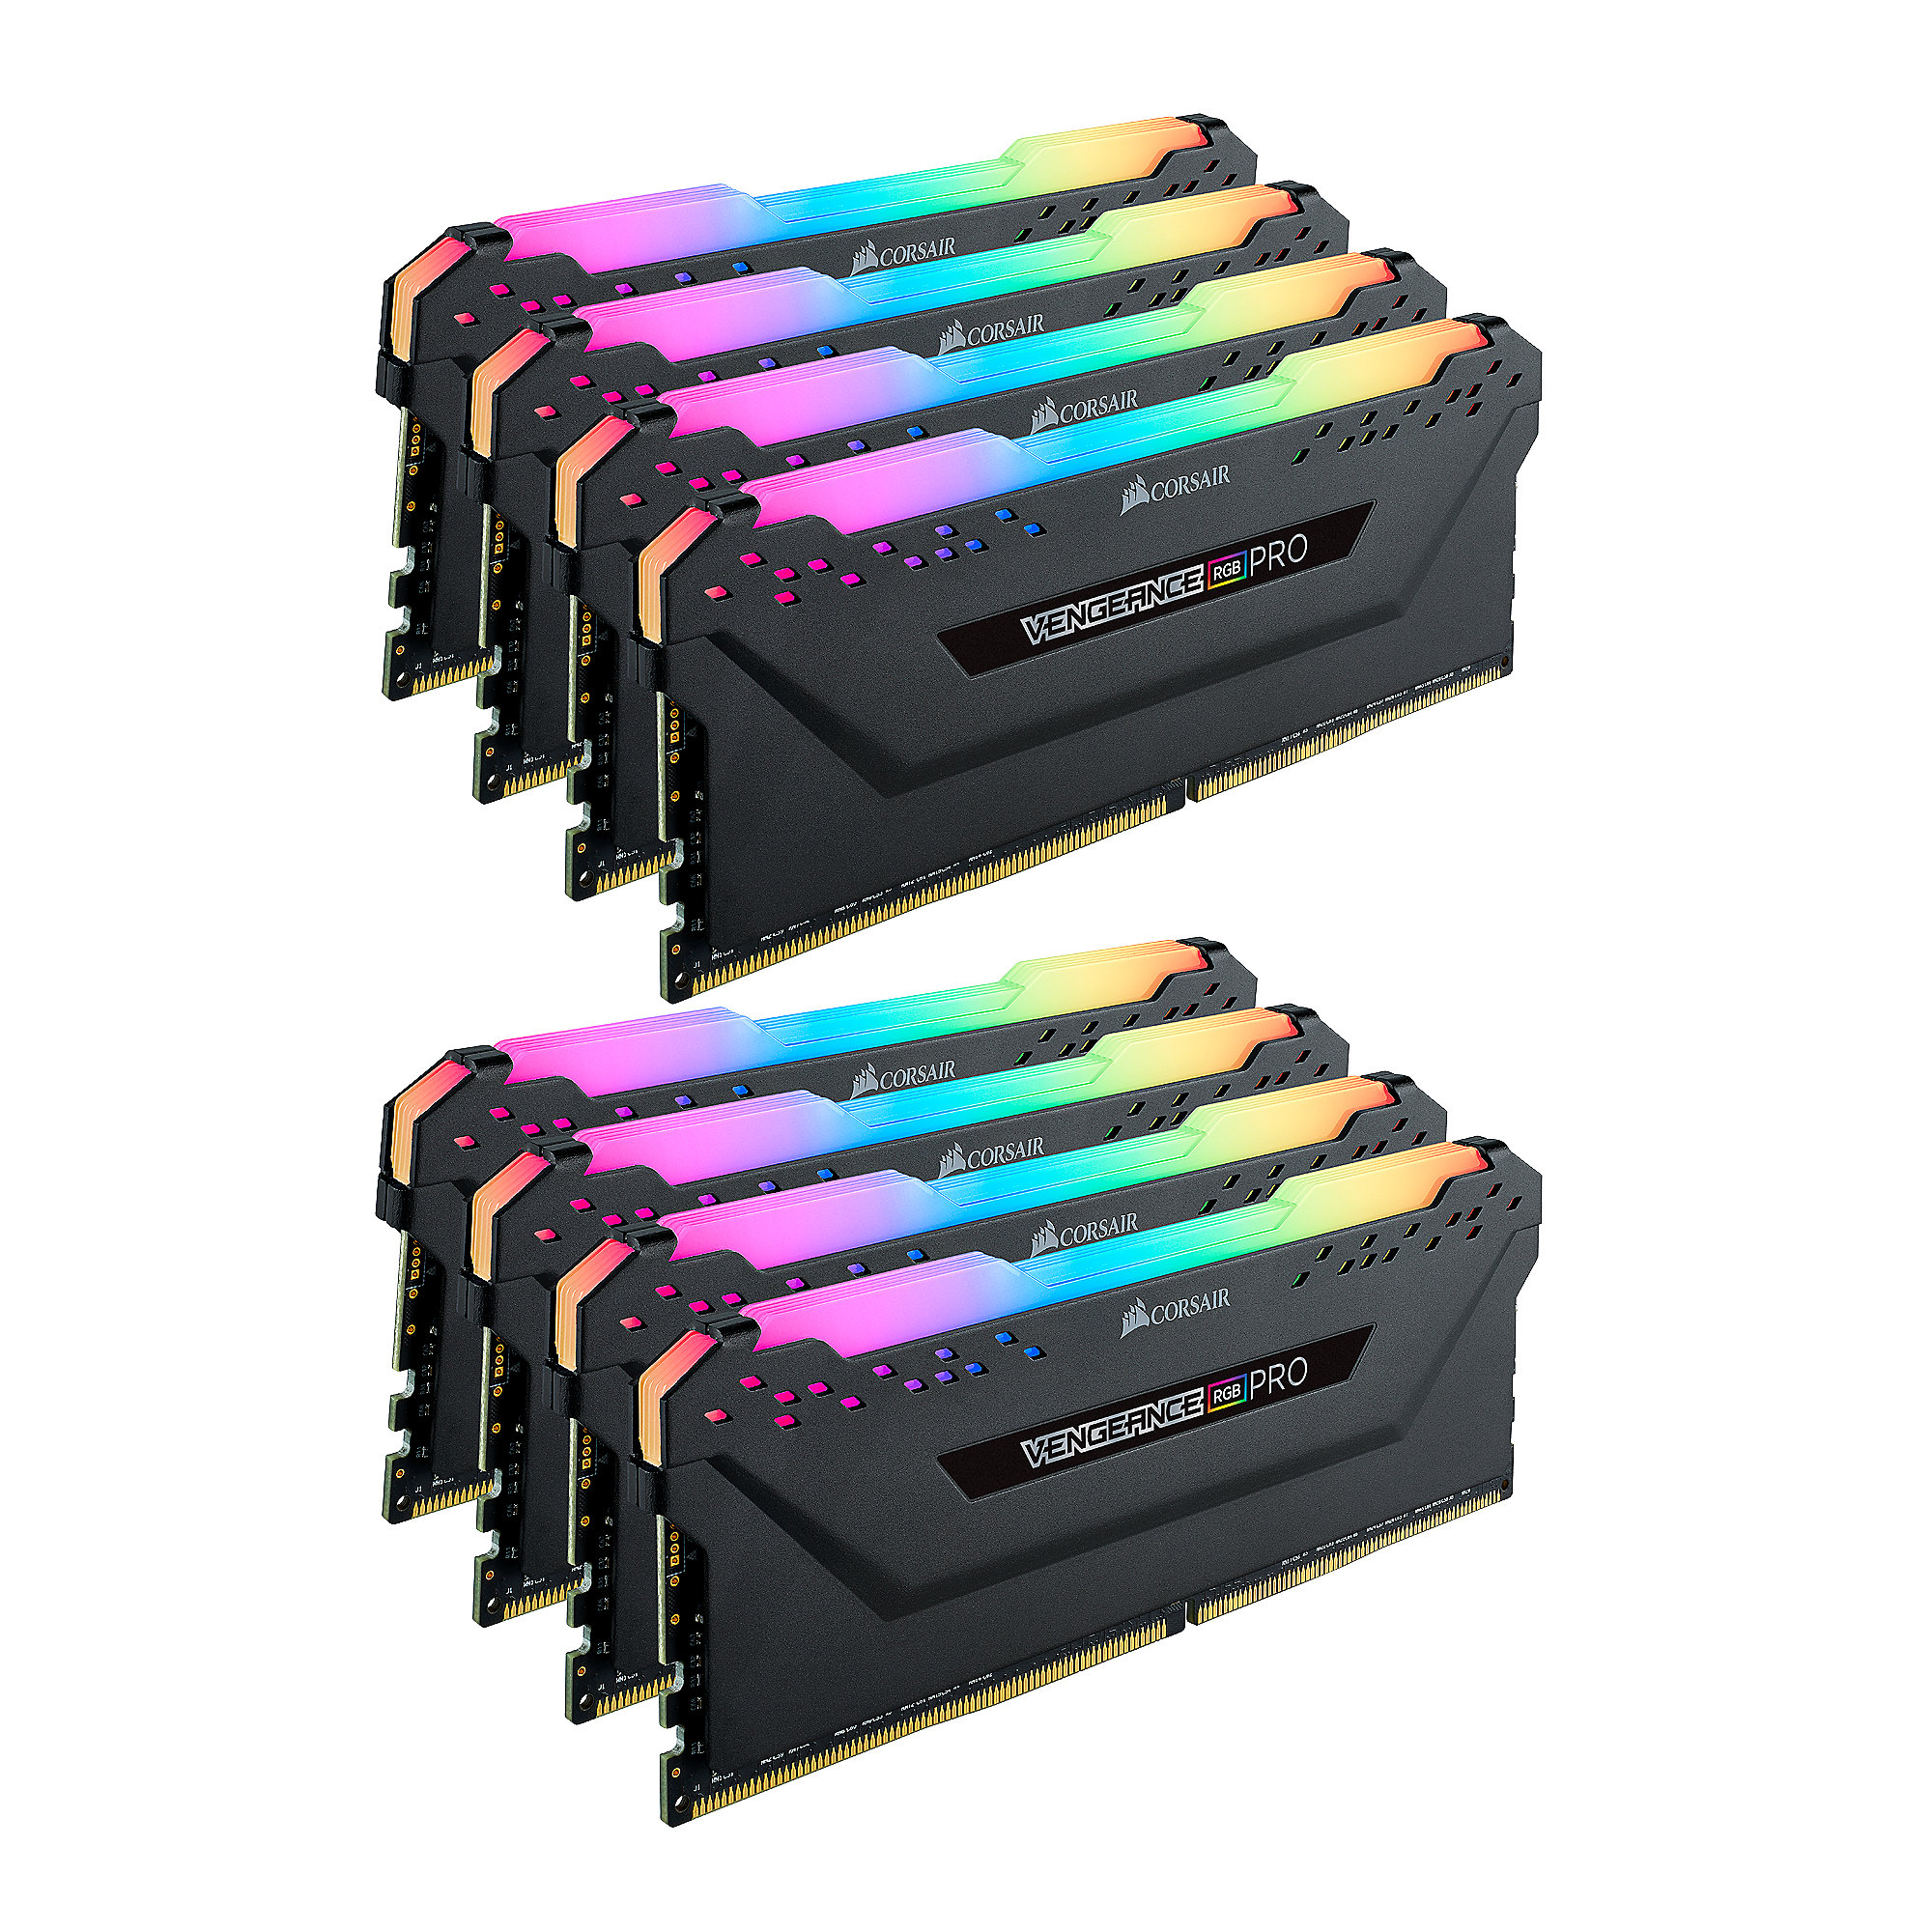 64GB (8x8GB) Corsair Vengeance RGB PRO DDR4-2666 RAM CL16 (16-18-18-35) Kit